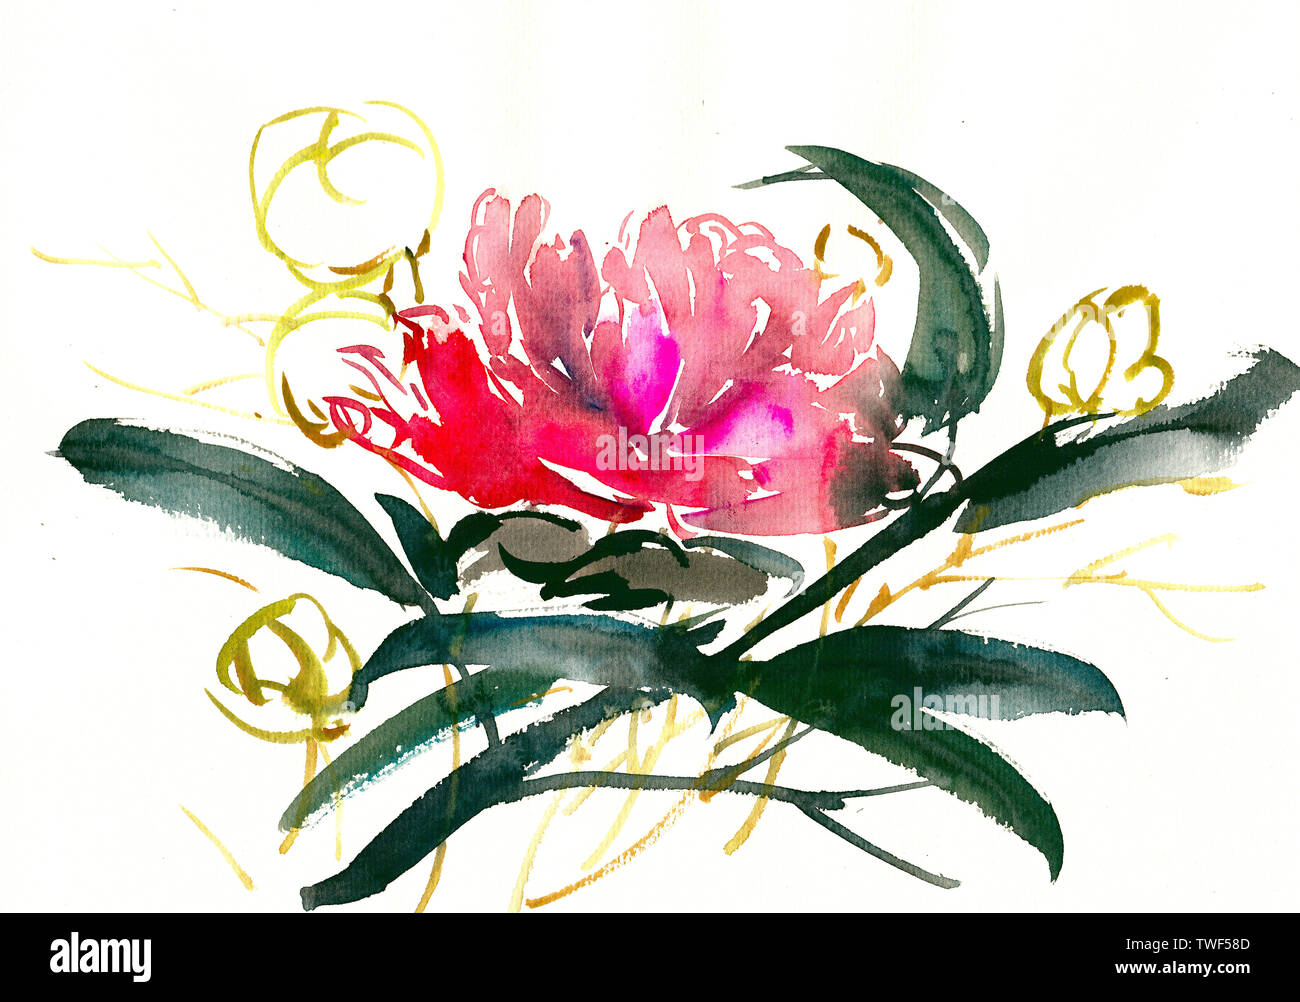 Big Flower Plant Drawing Illustration Decorative Watercolor Ink Hand Drawn Stock Photo Alamy,Boneless Ribs In Oven